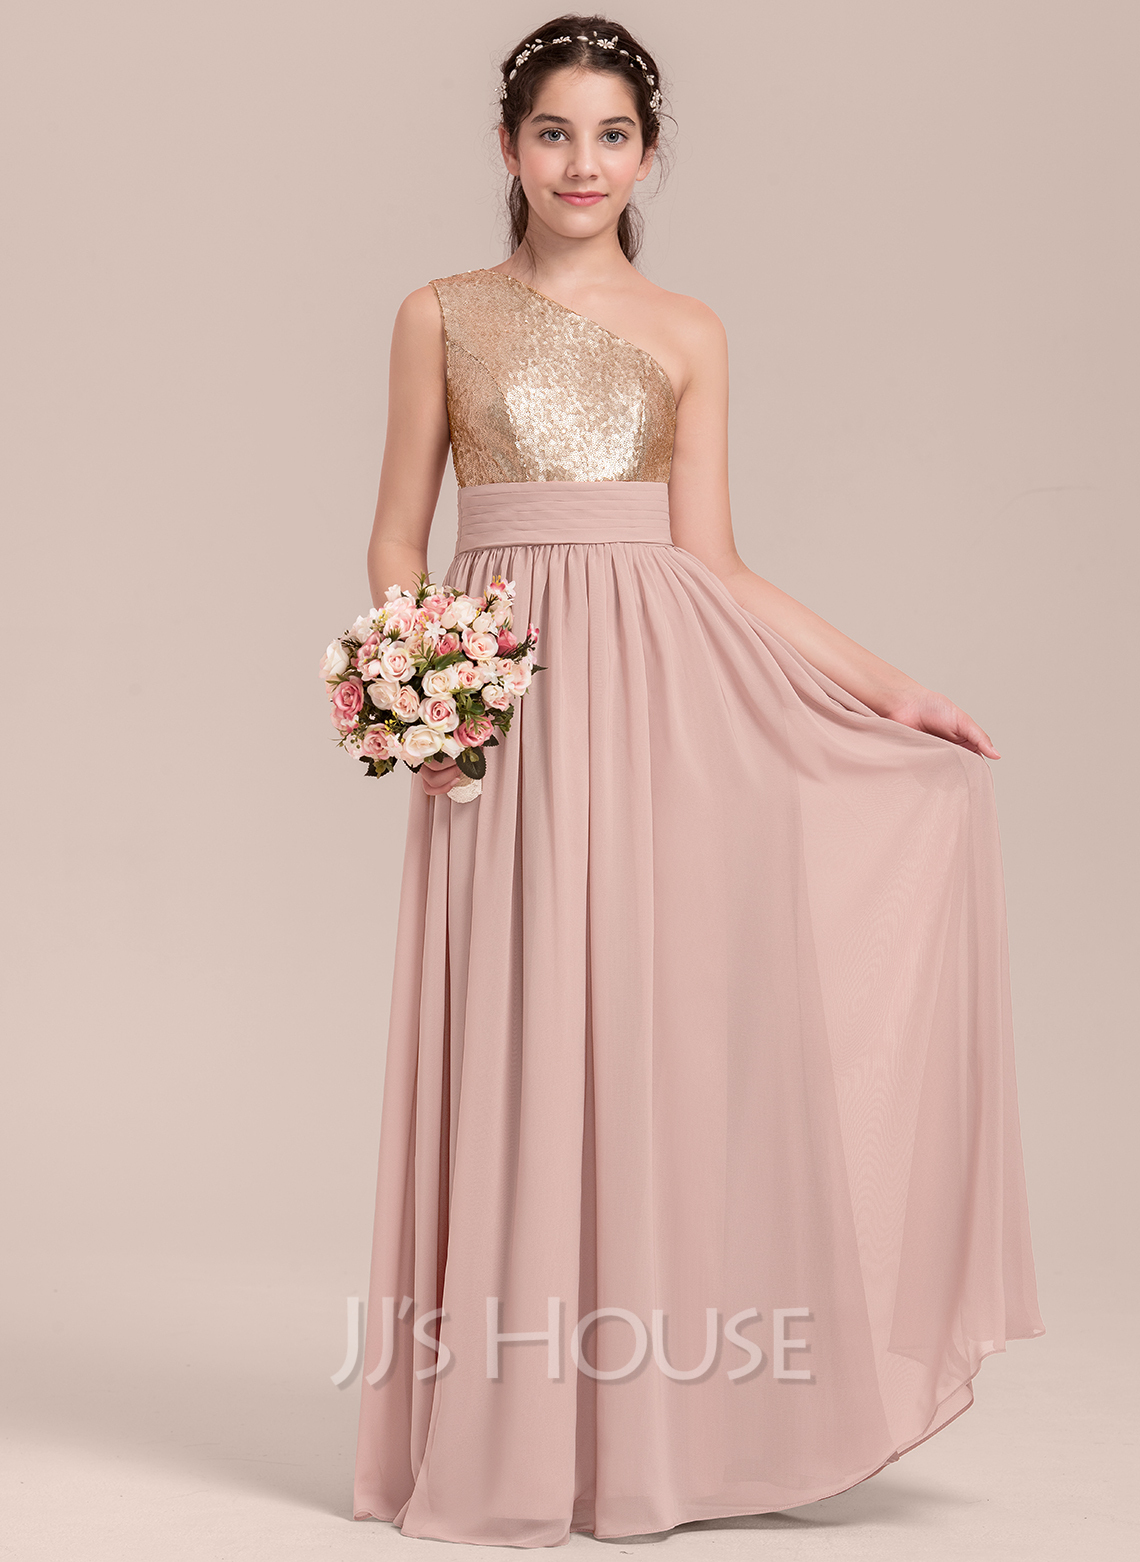 A lineprincess one shoulder floor length chiffon junior a lineprincess one shoulder floor length chiffon junior bridesmaid dress with loading zoom ombrellifo Choice Image